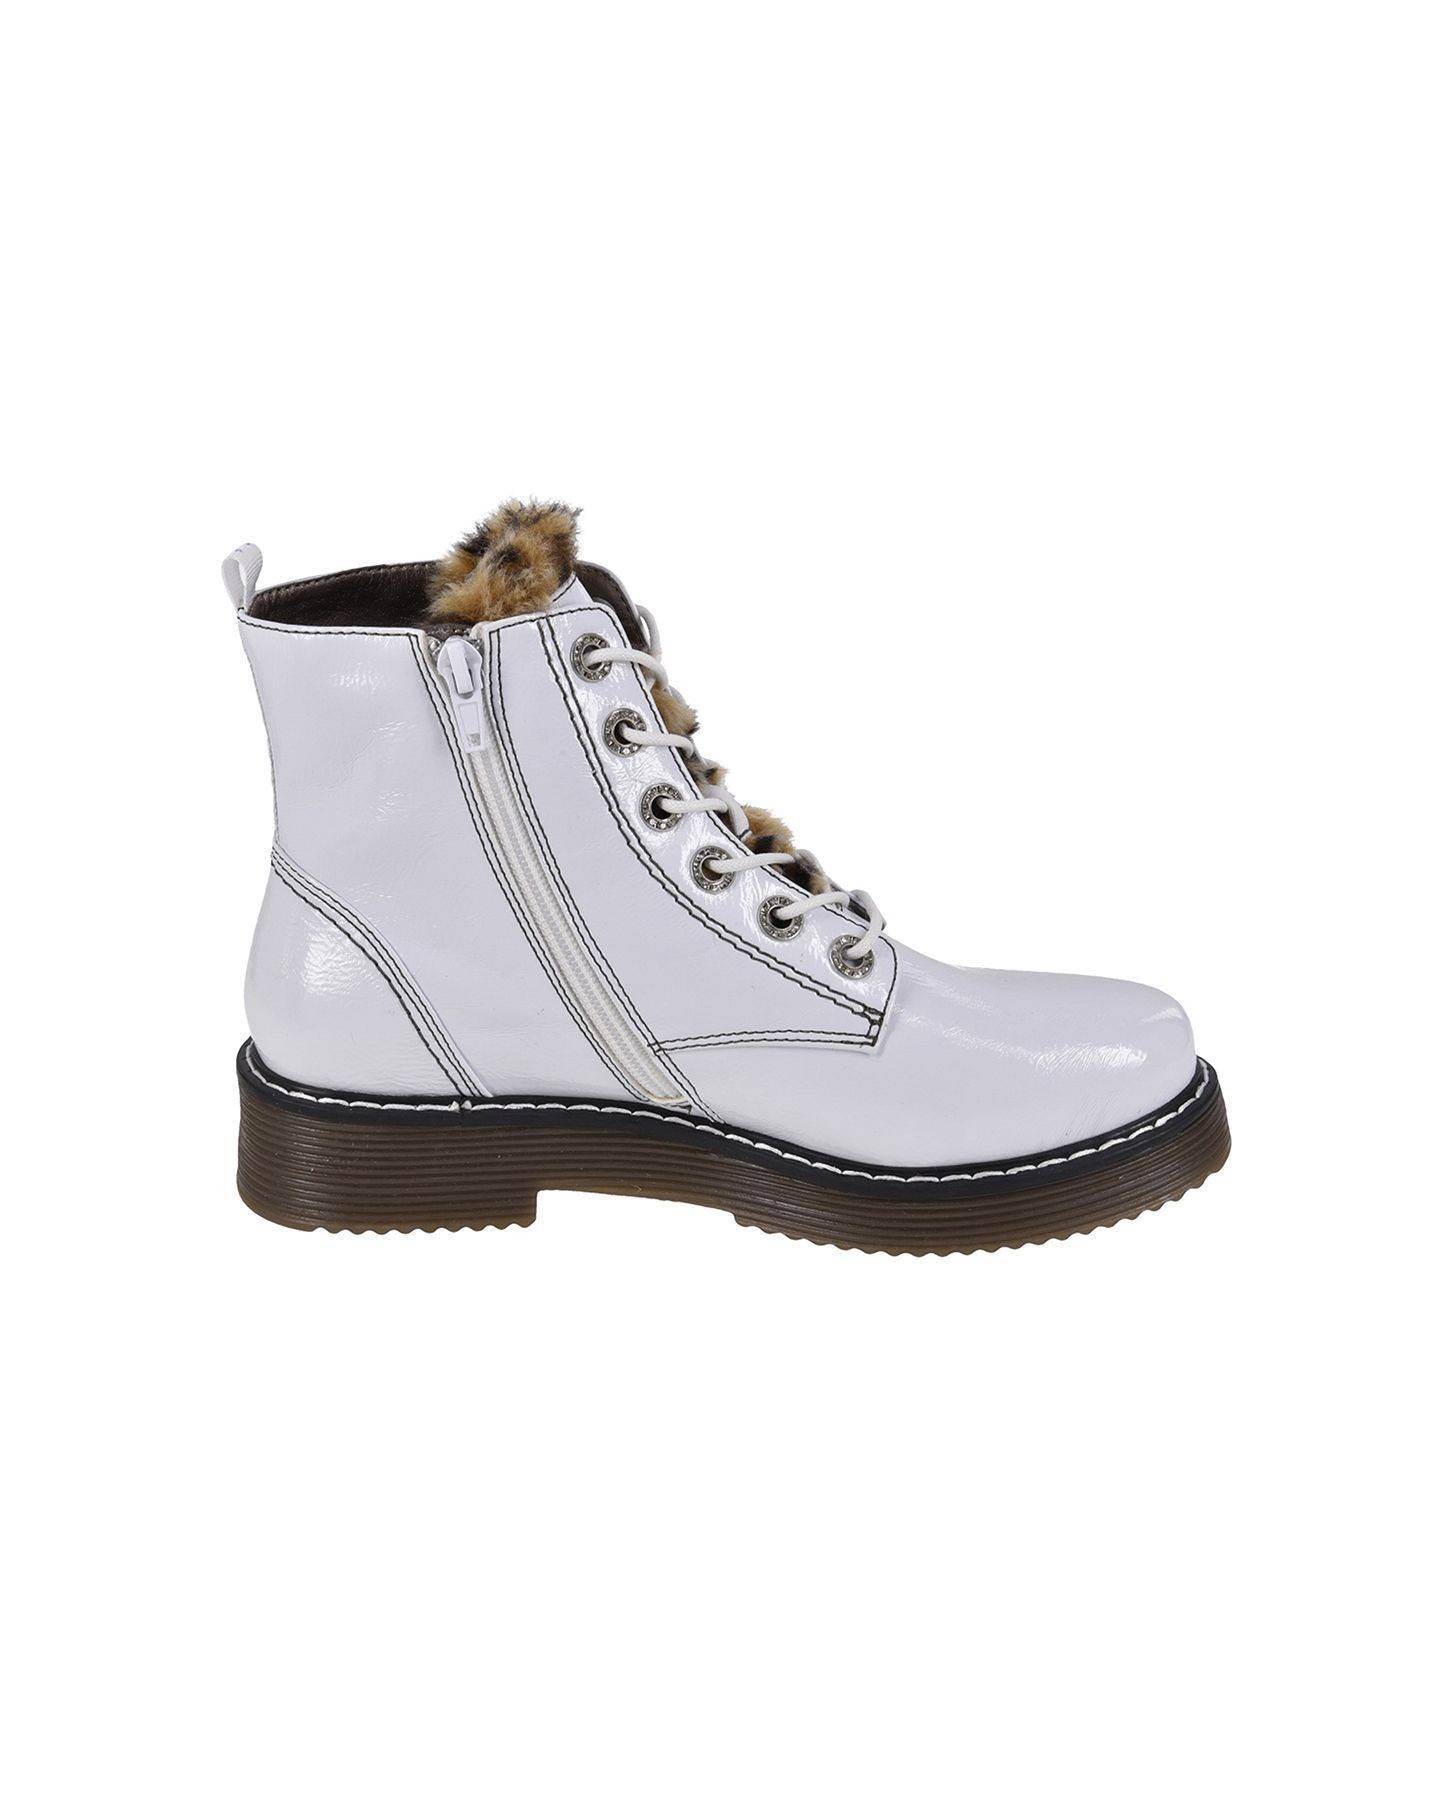 100% authentic 691b0 9ec17 Lace-up boots in white - Official Online Shop